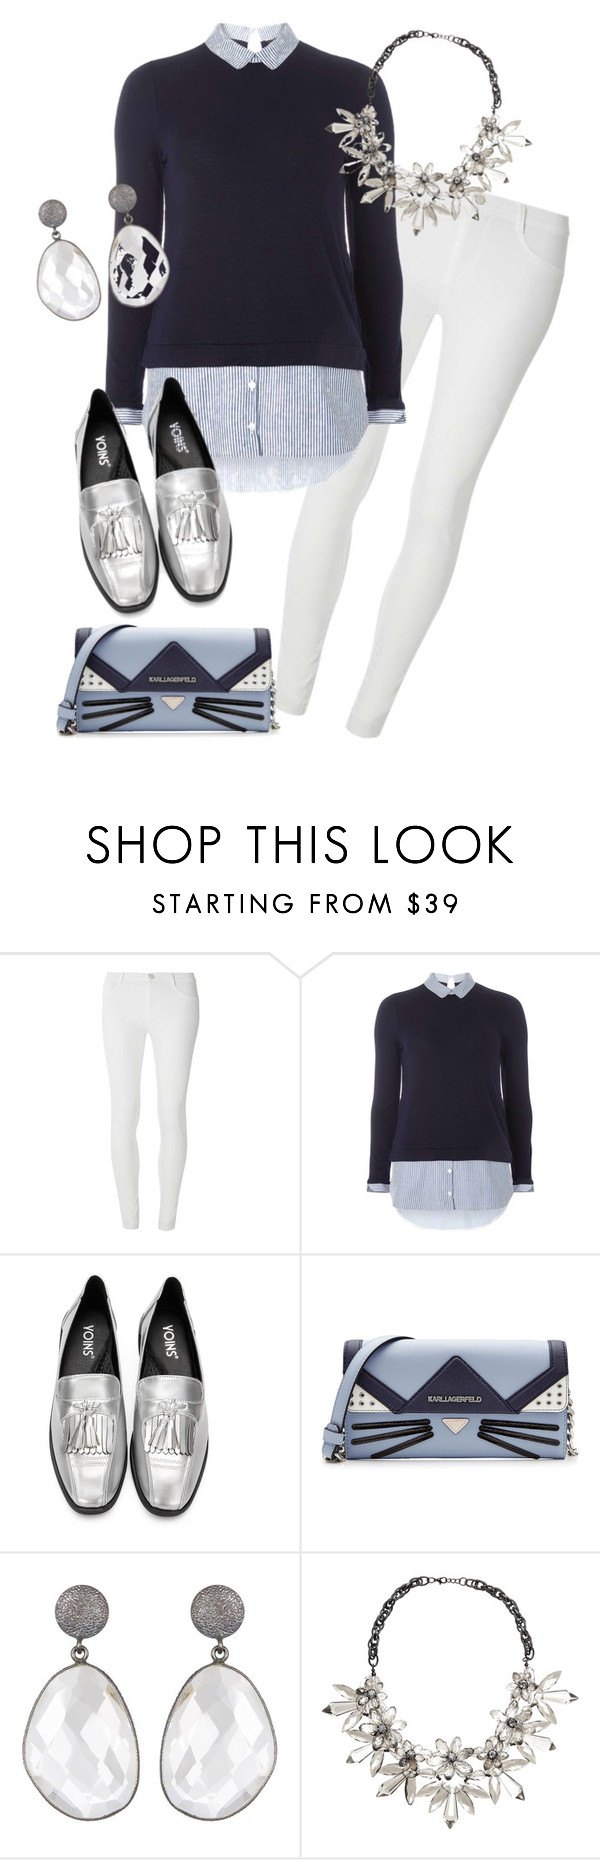 """Untitled #54"" by hillhop ❤ liked on Polyvore featuring Dorothy Perkins, Karl Lagerfeld and John Lewis"